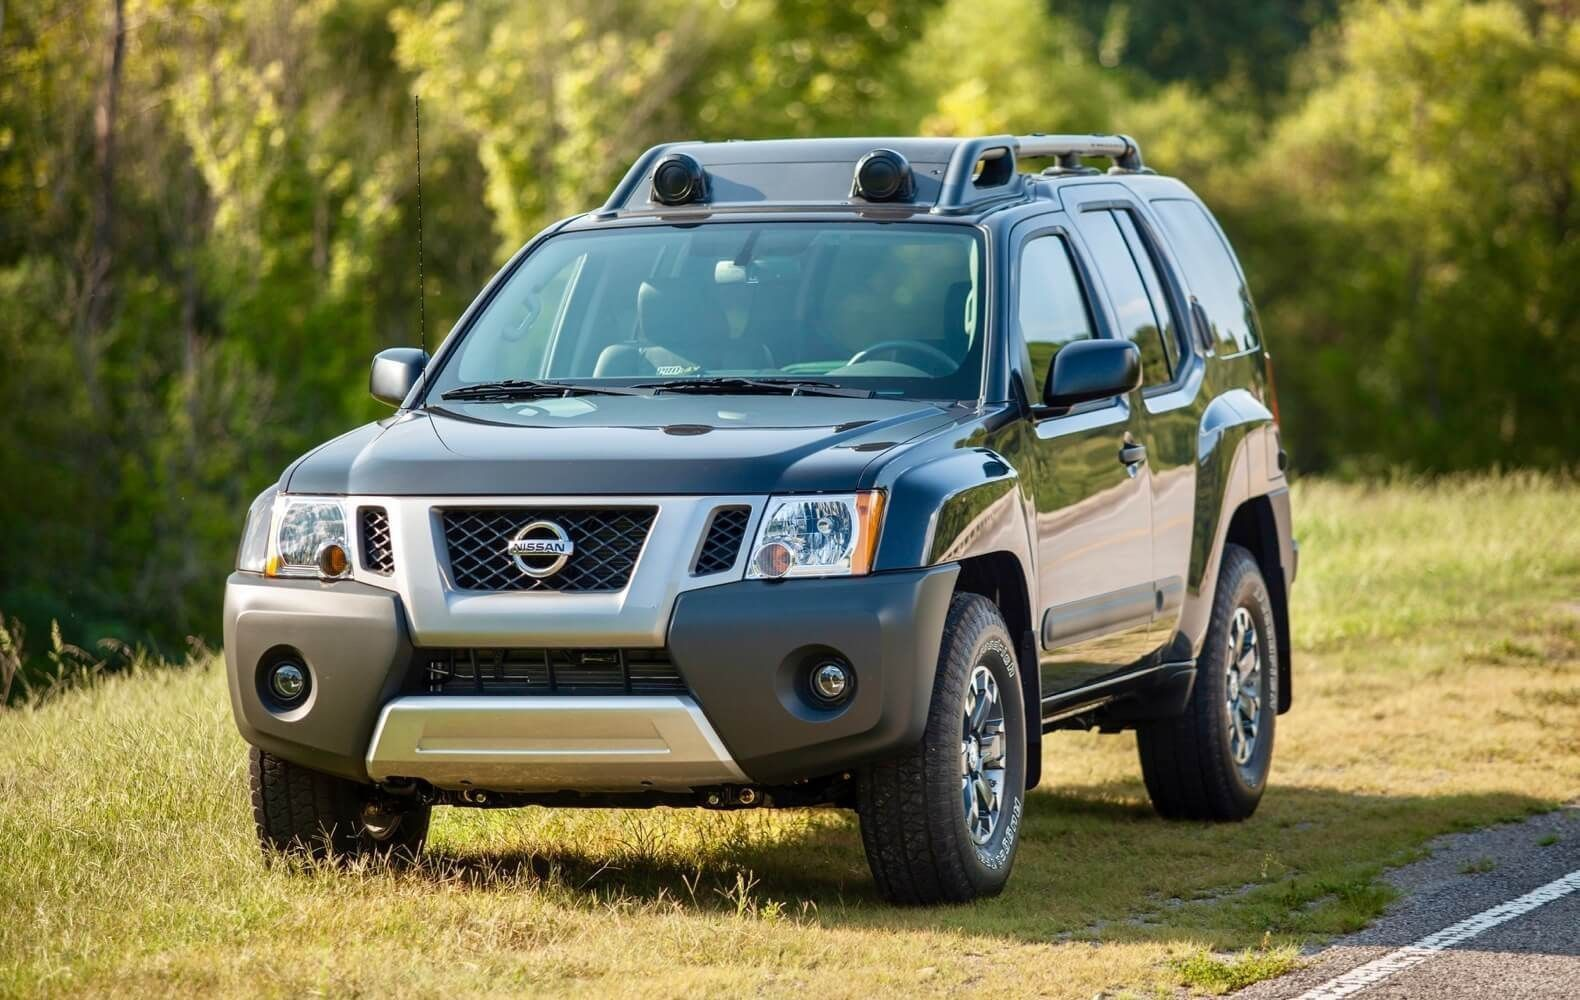 2021 Nissan Xterra Specs and Review